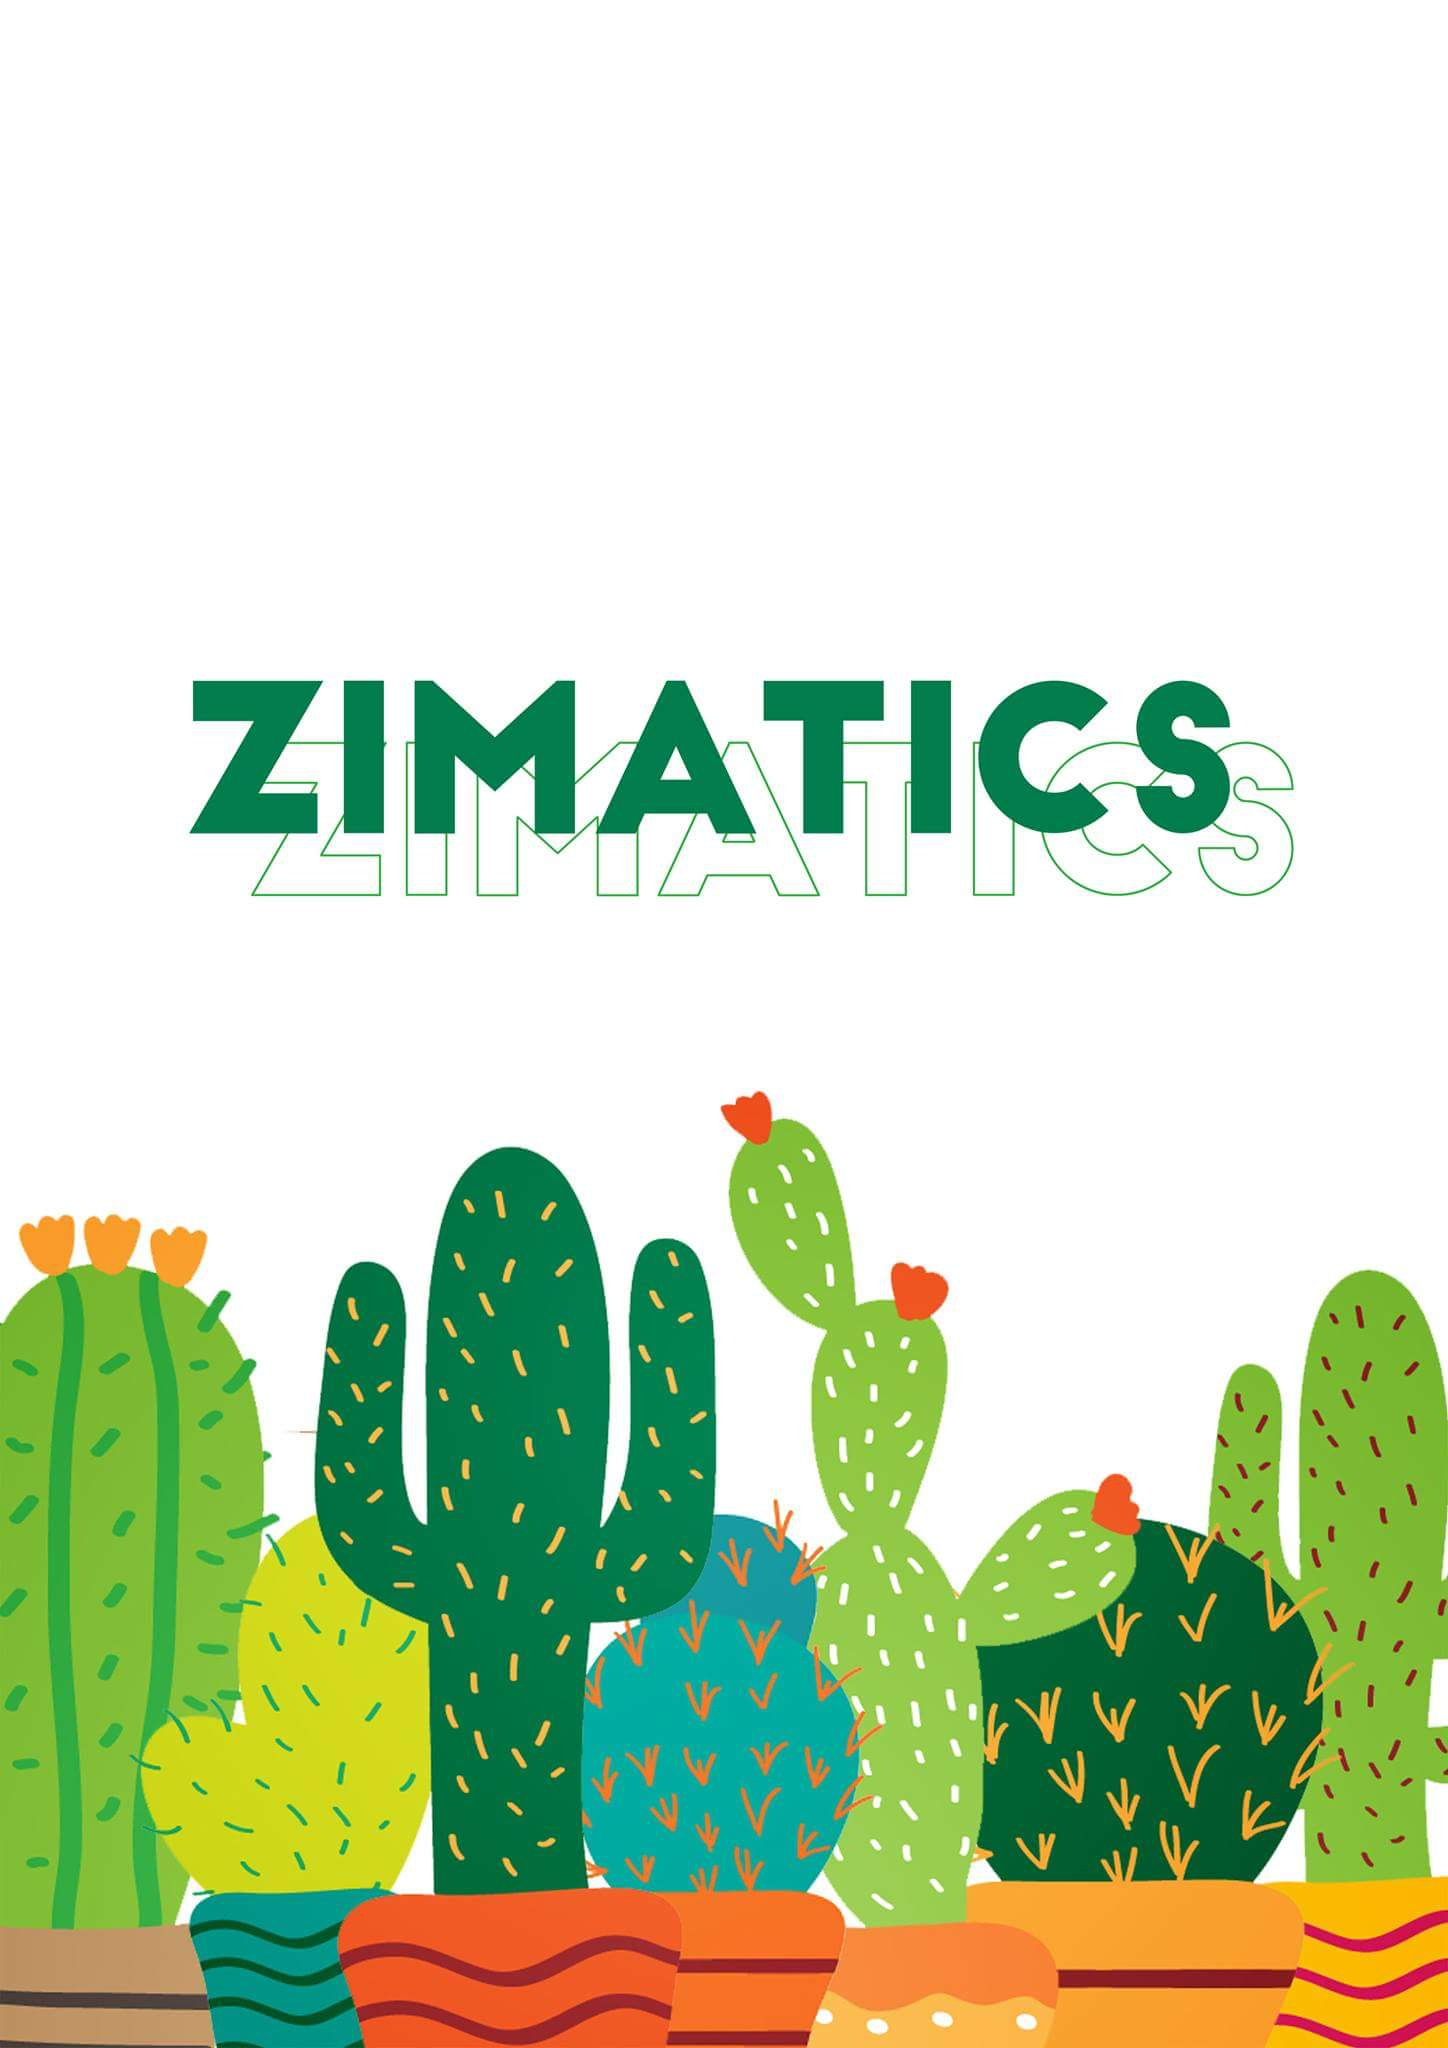 Zimatics 2017 Part 1 is Coming